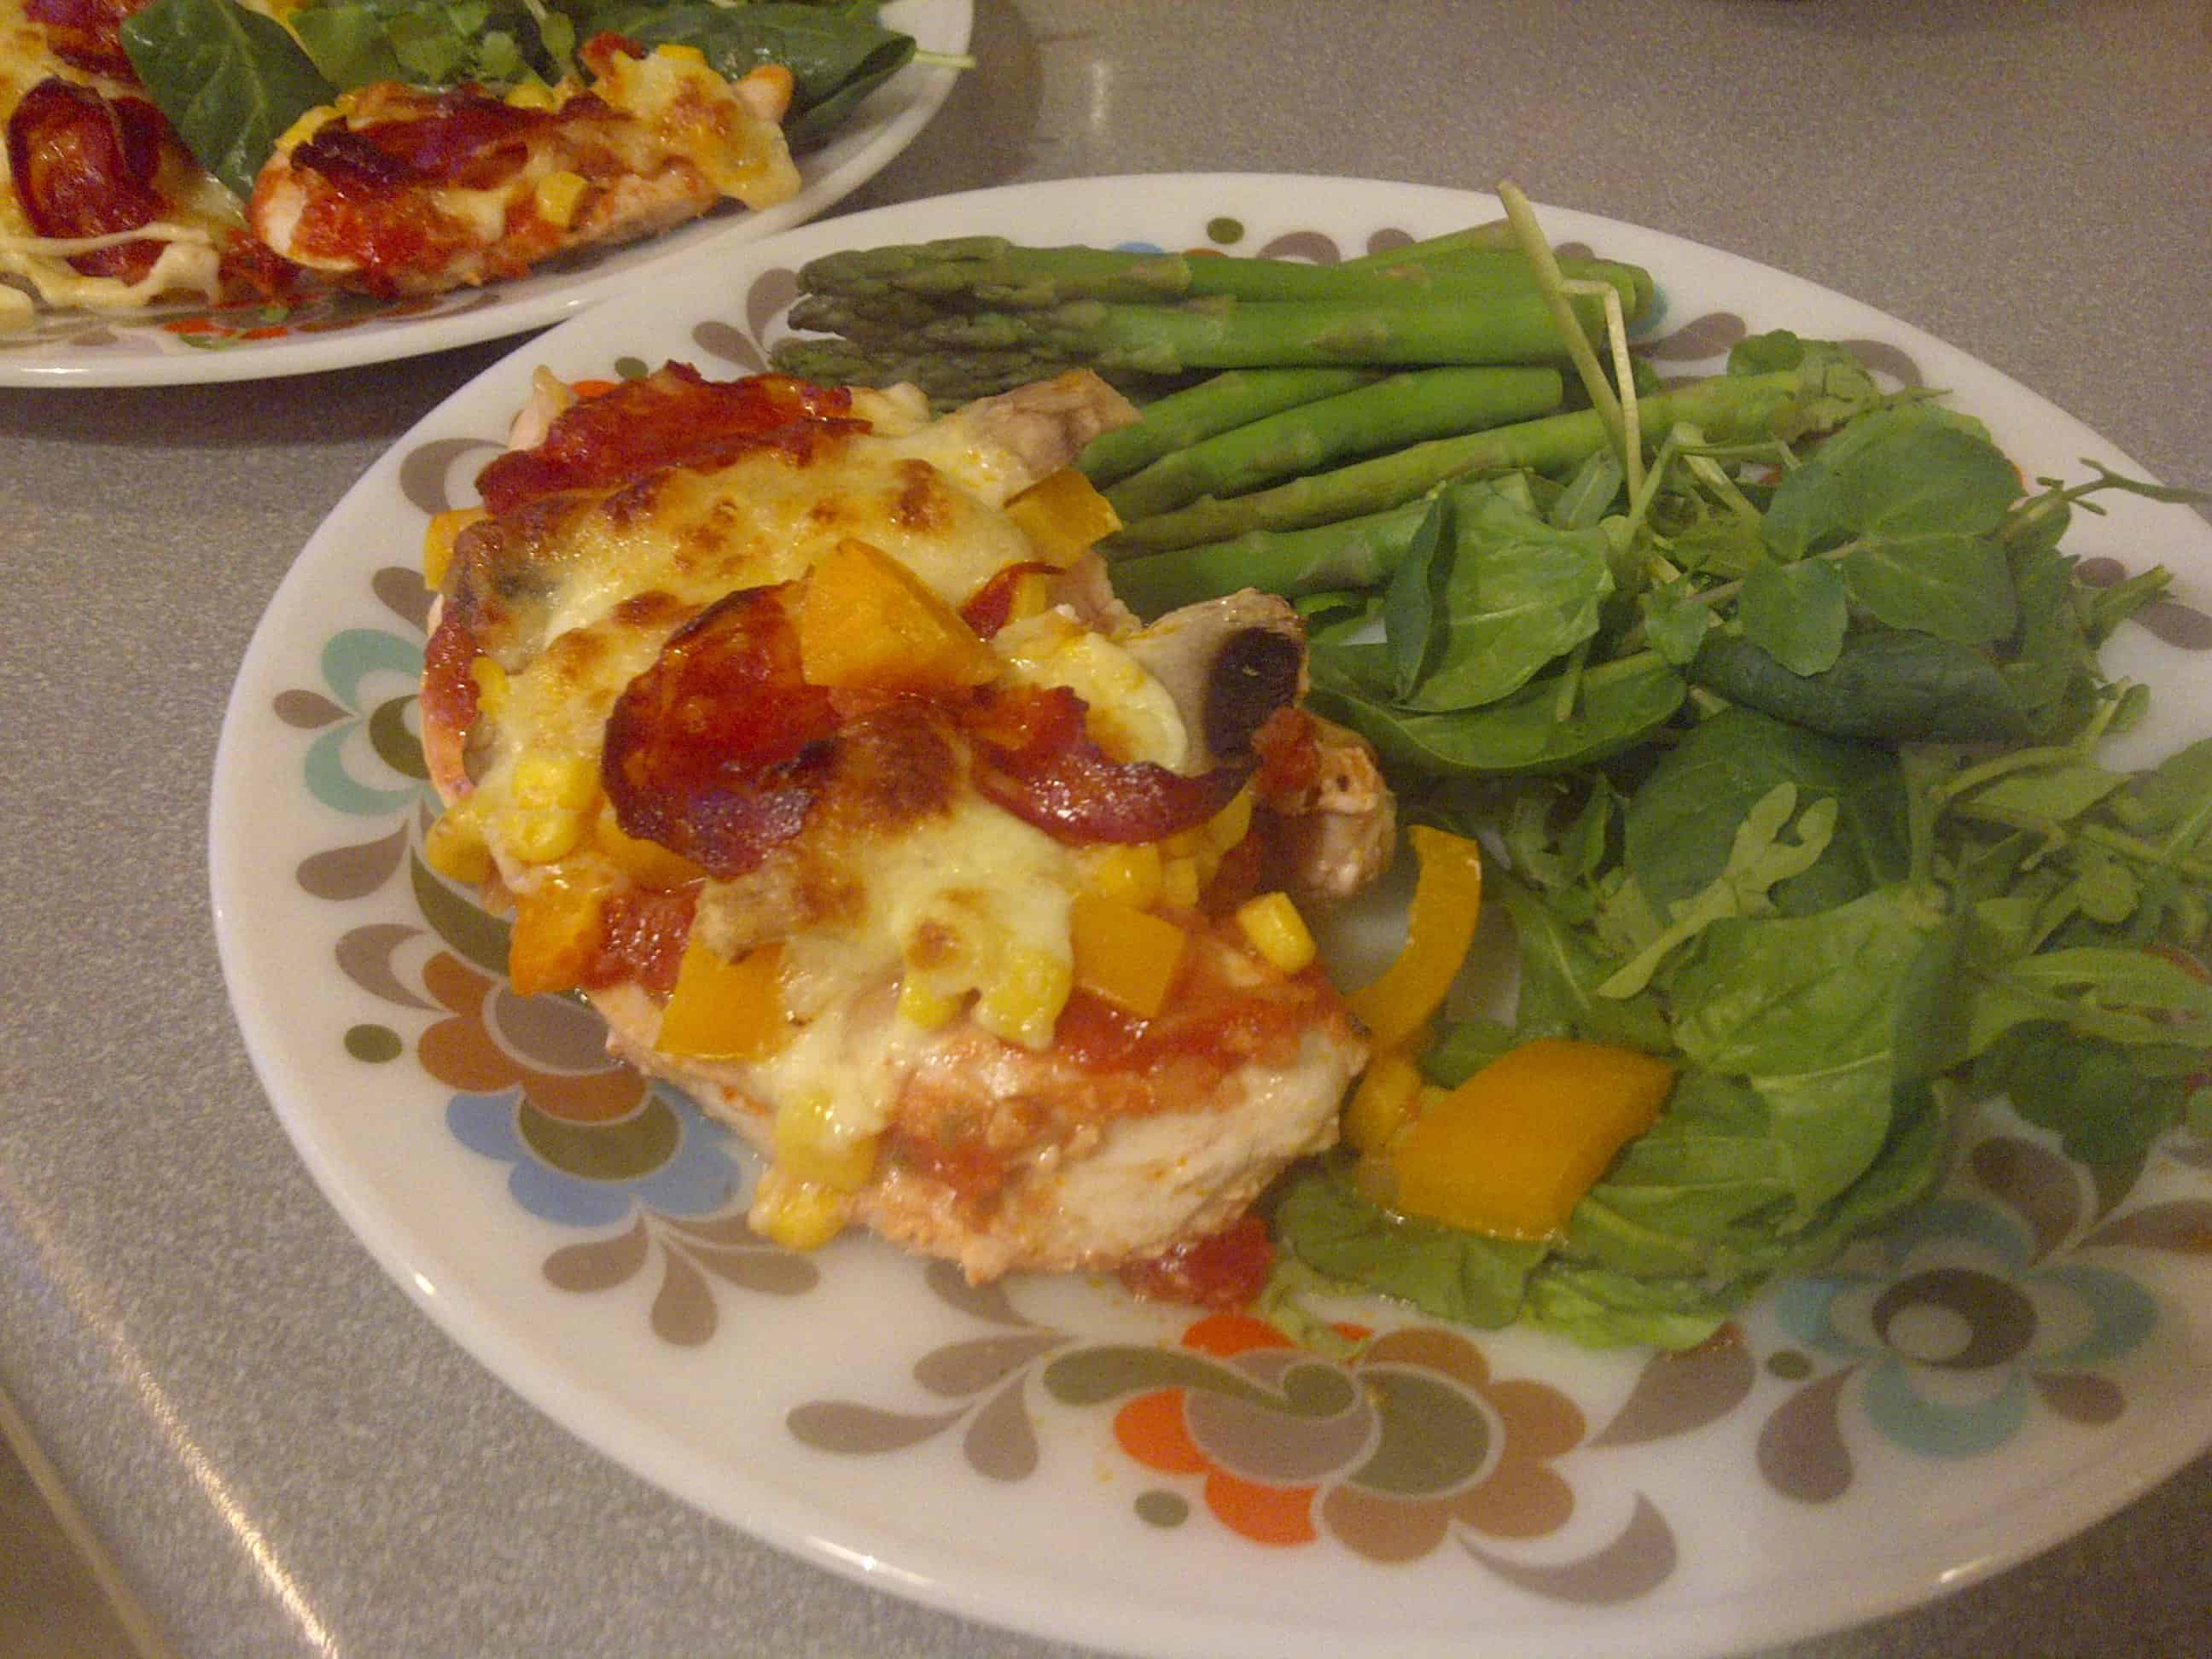 Serve with salad and greens - yum!